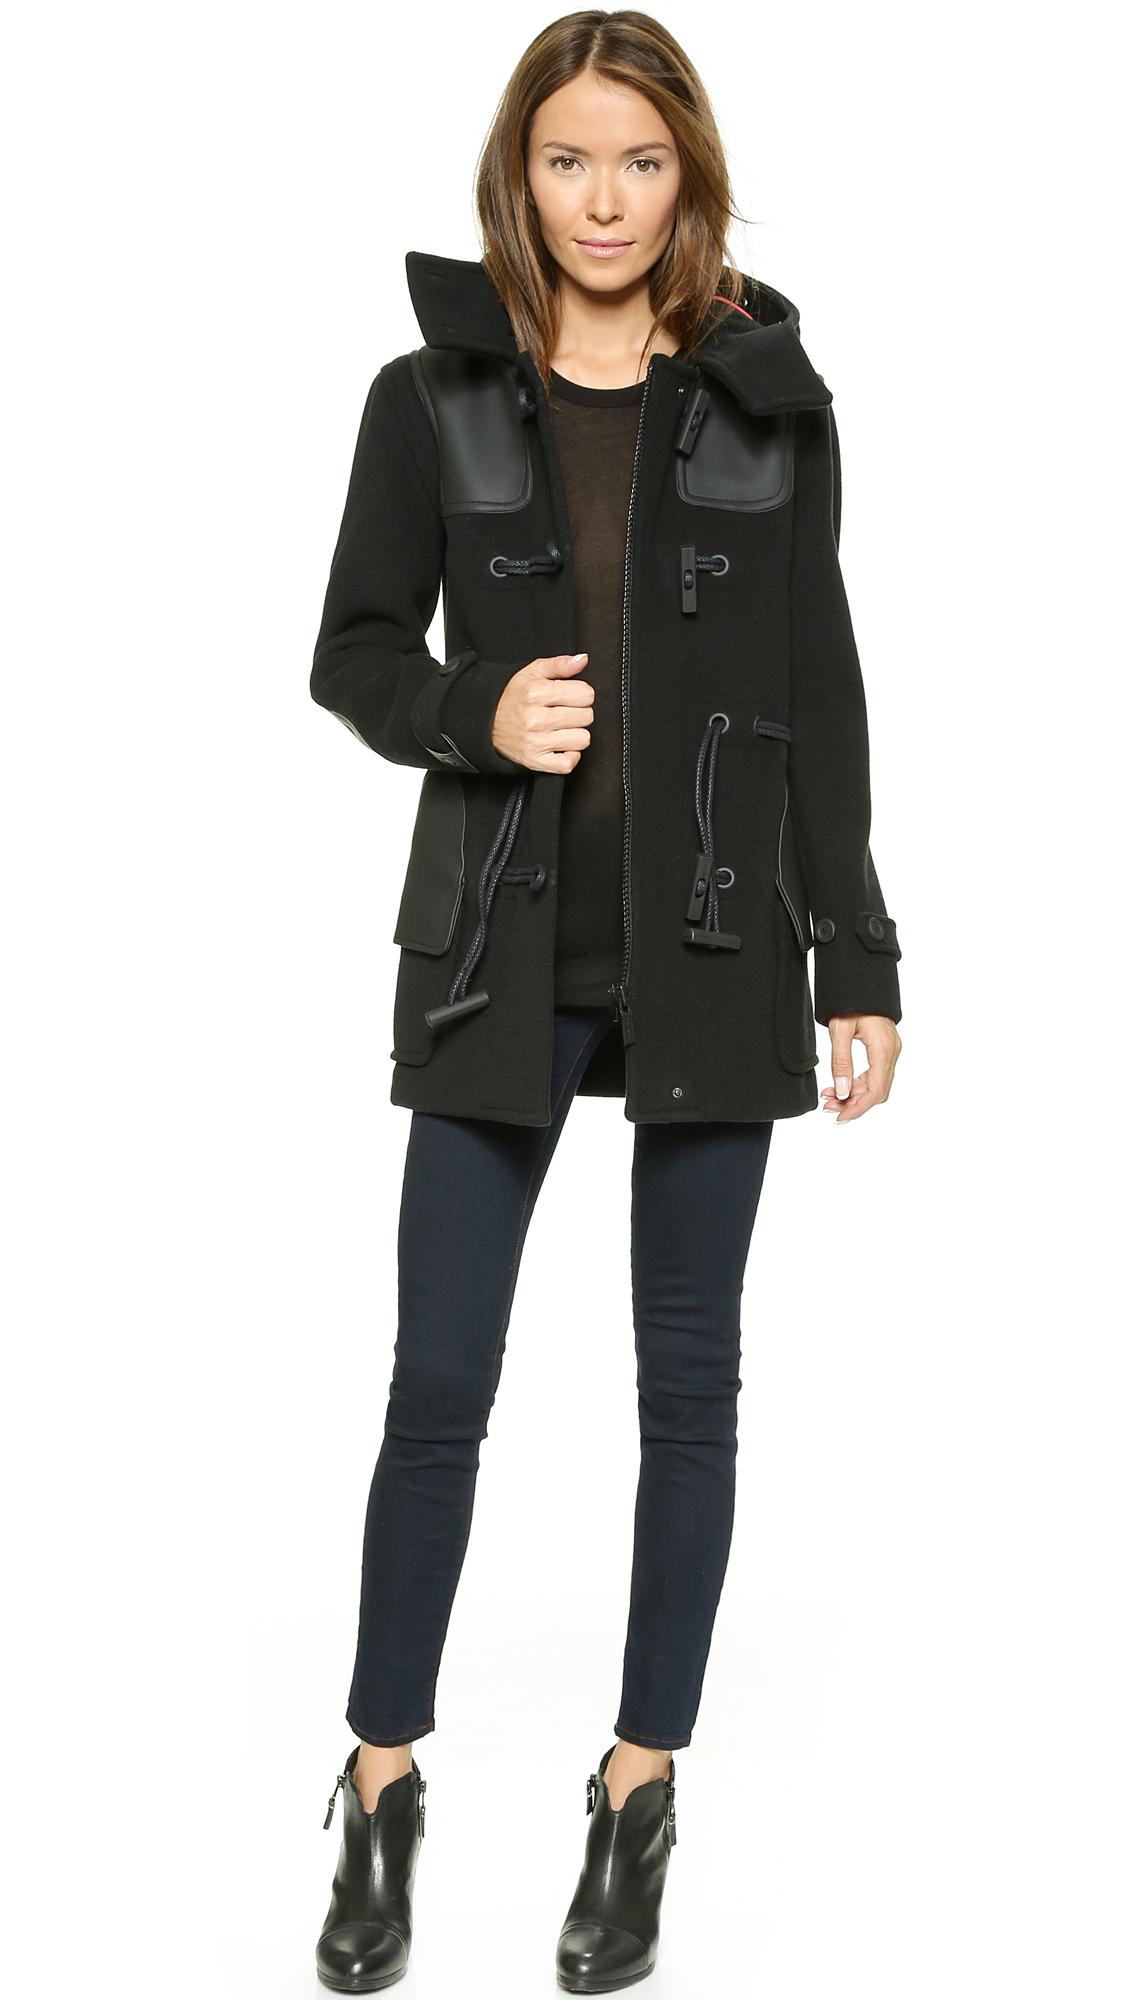 cdd0a87168aae Gallery. Previously sold at: Shopbop · Women's Duffle Coats